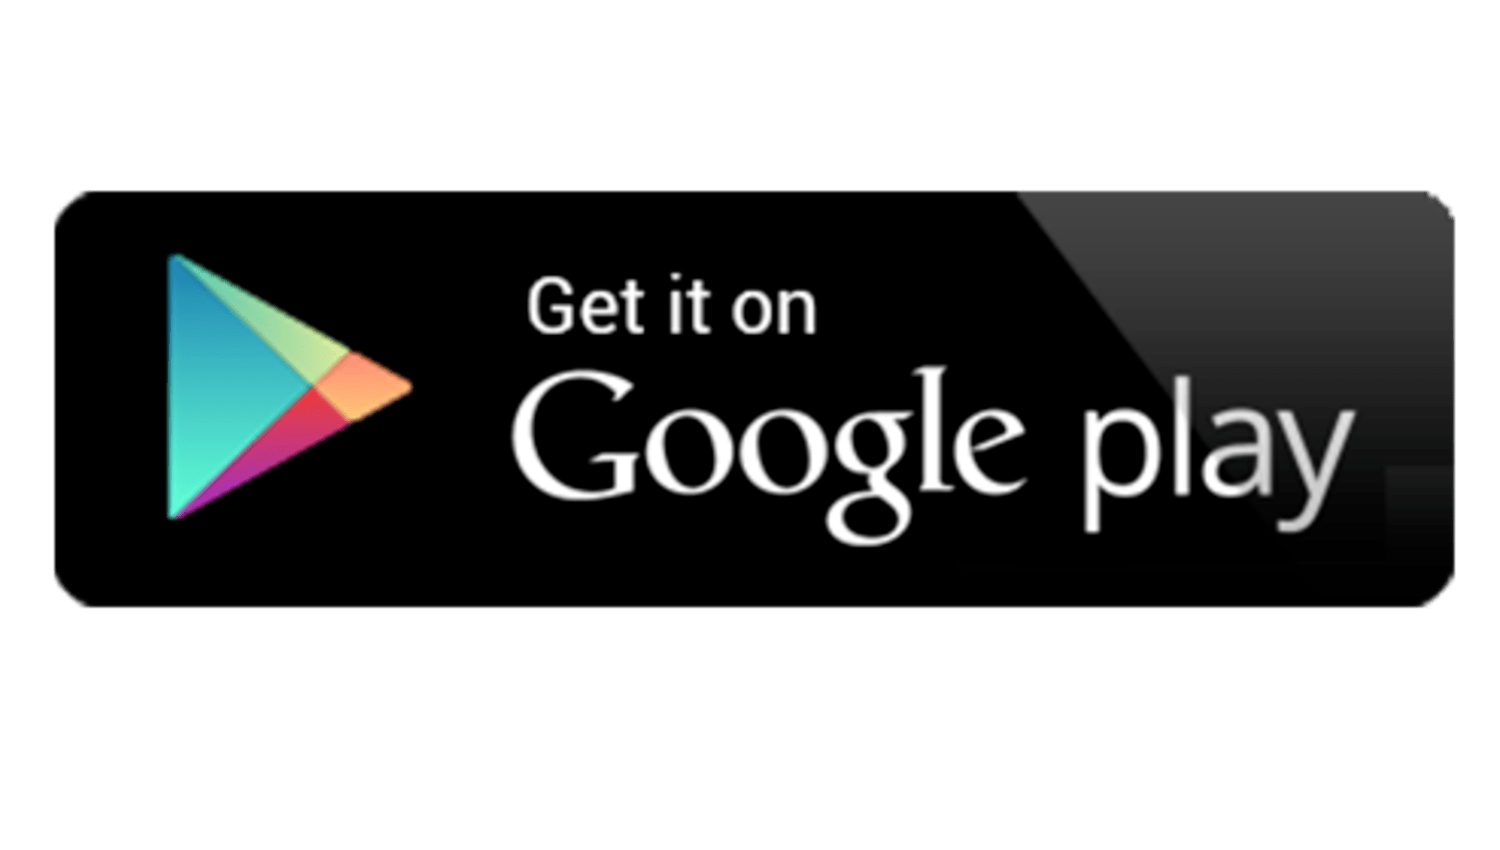 Google play download - Forældreguiden